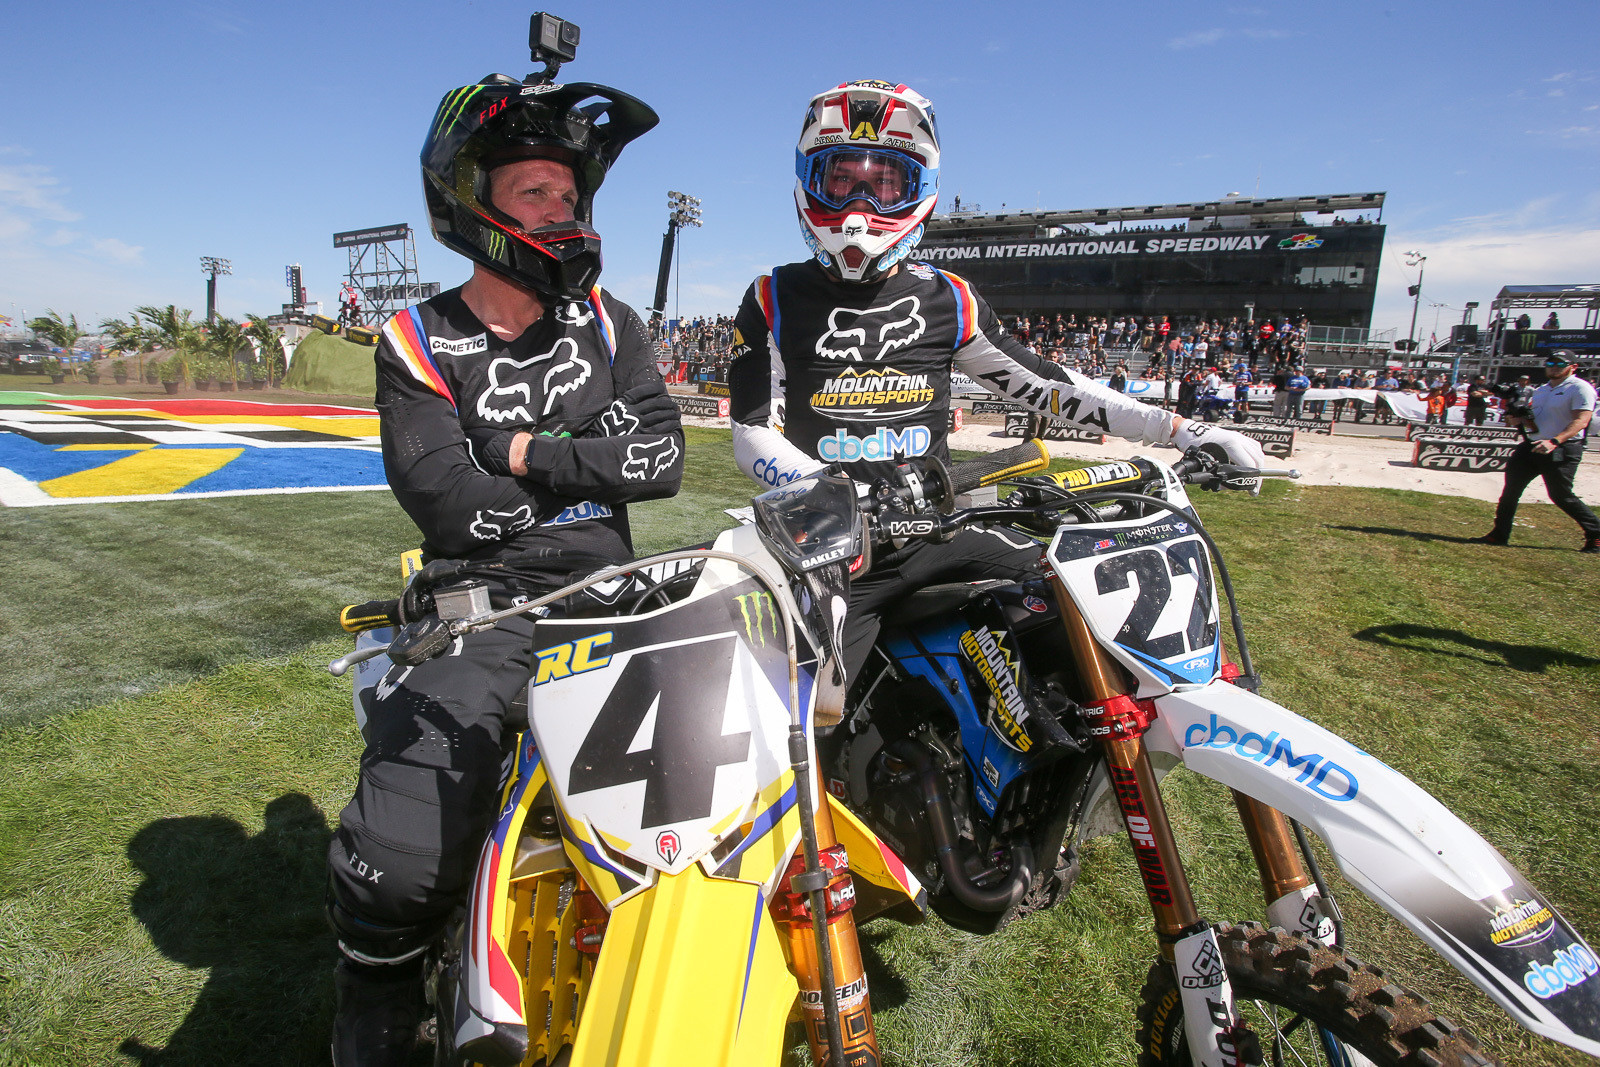 Remember when these two used to battle? Once again, Ricky Carmichael designed this weekend's track at Daytona, and it features both modern sections, plus elements that are more retro-styled.